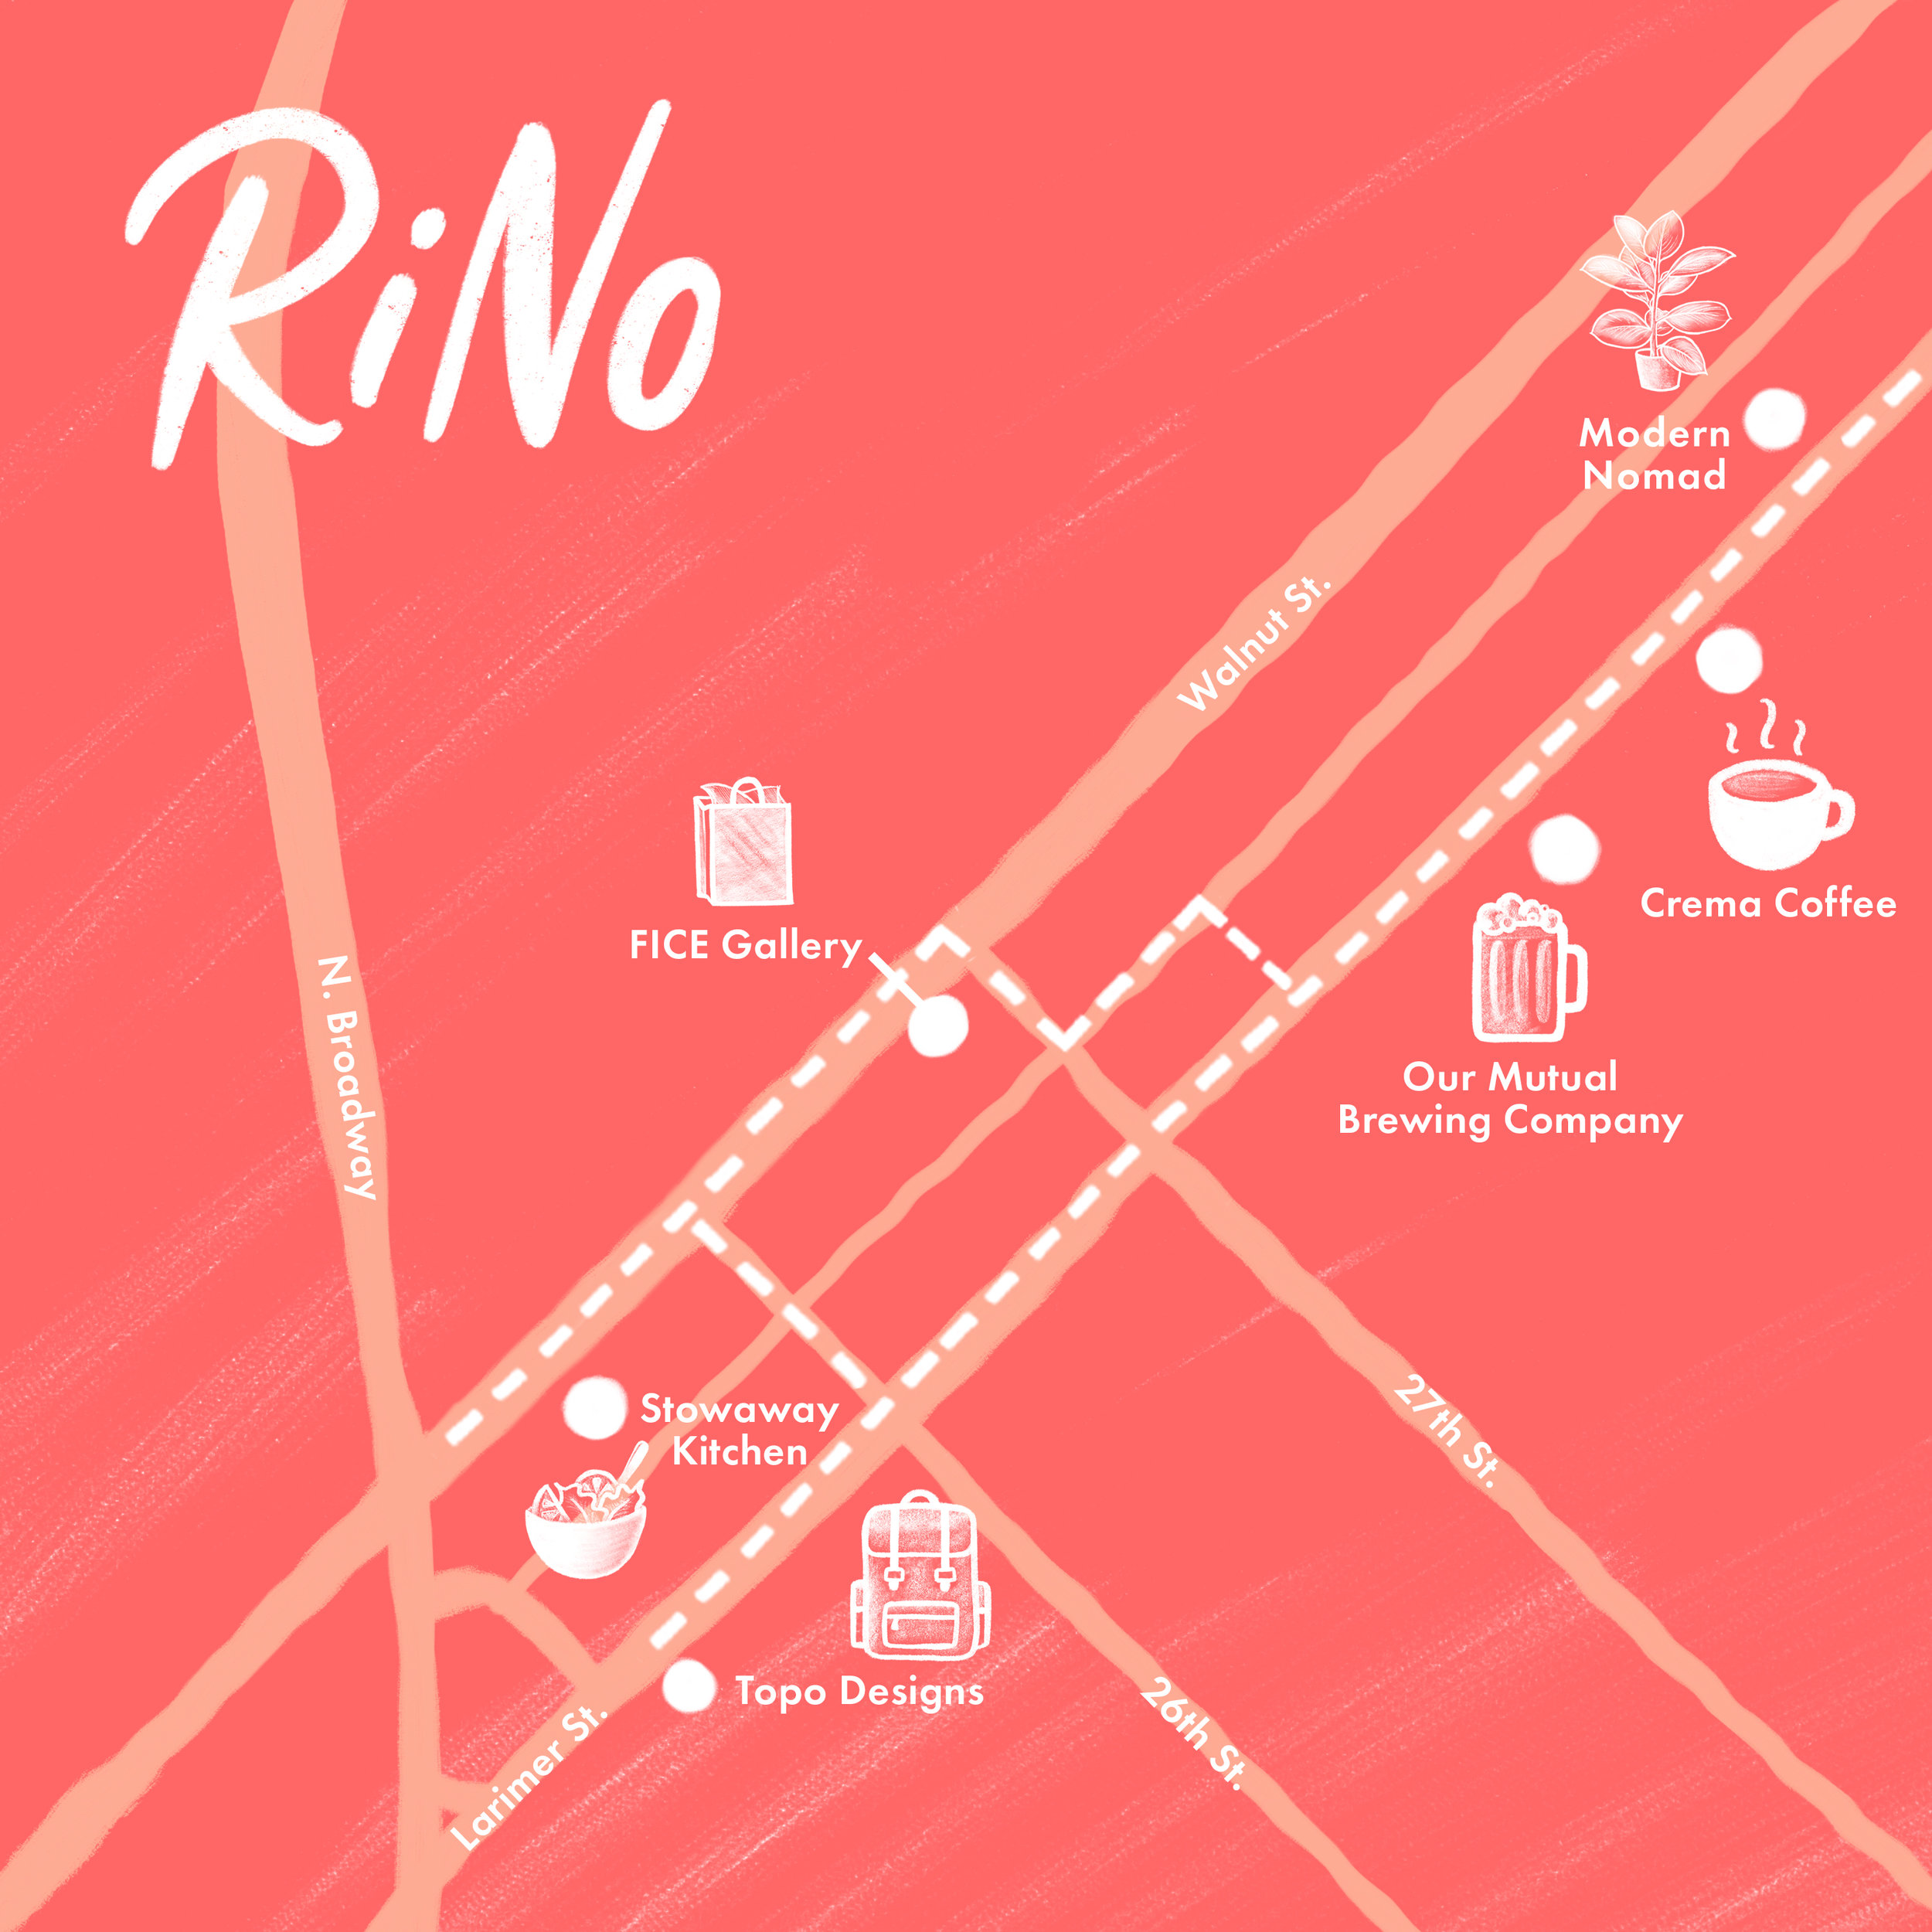 Rino-Map_Denver.jpg